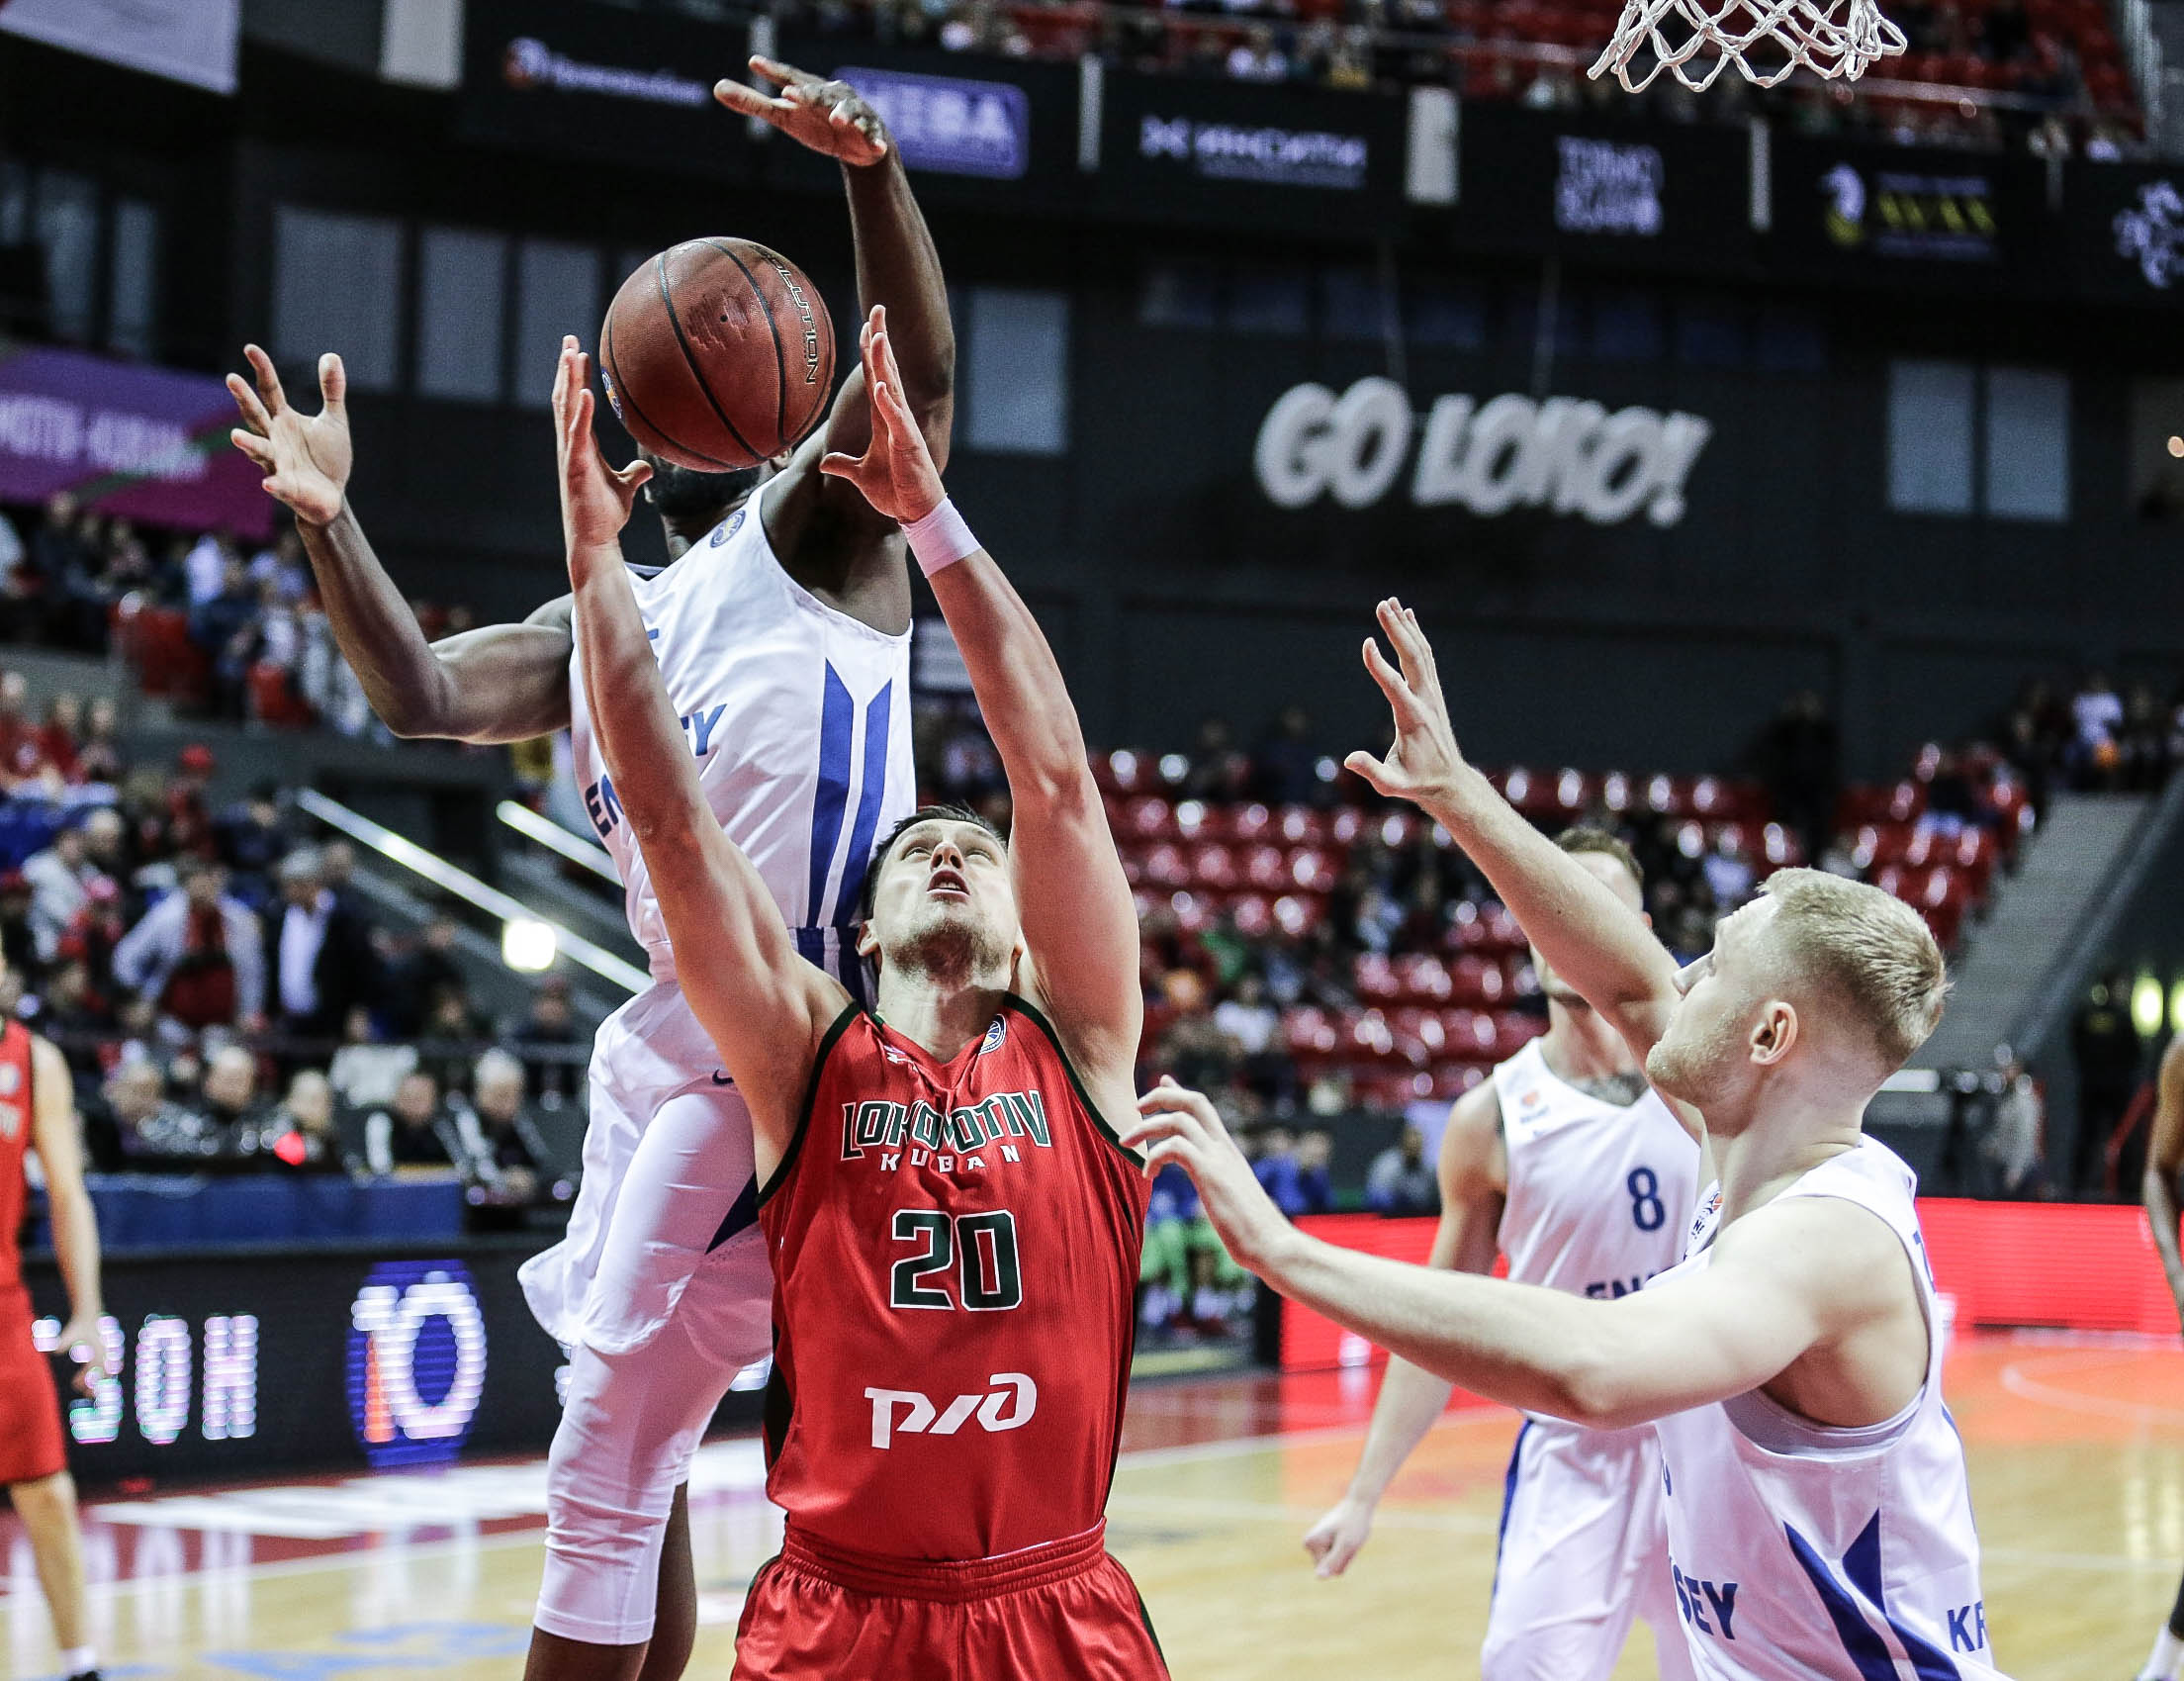 Lokomotiv Locks Down Enisey For 13th Win